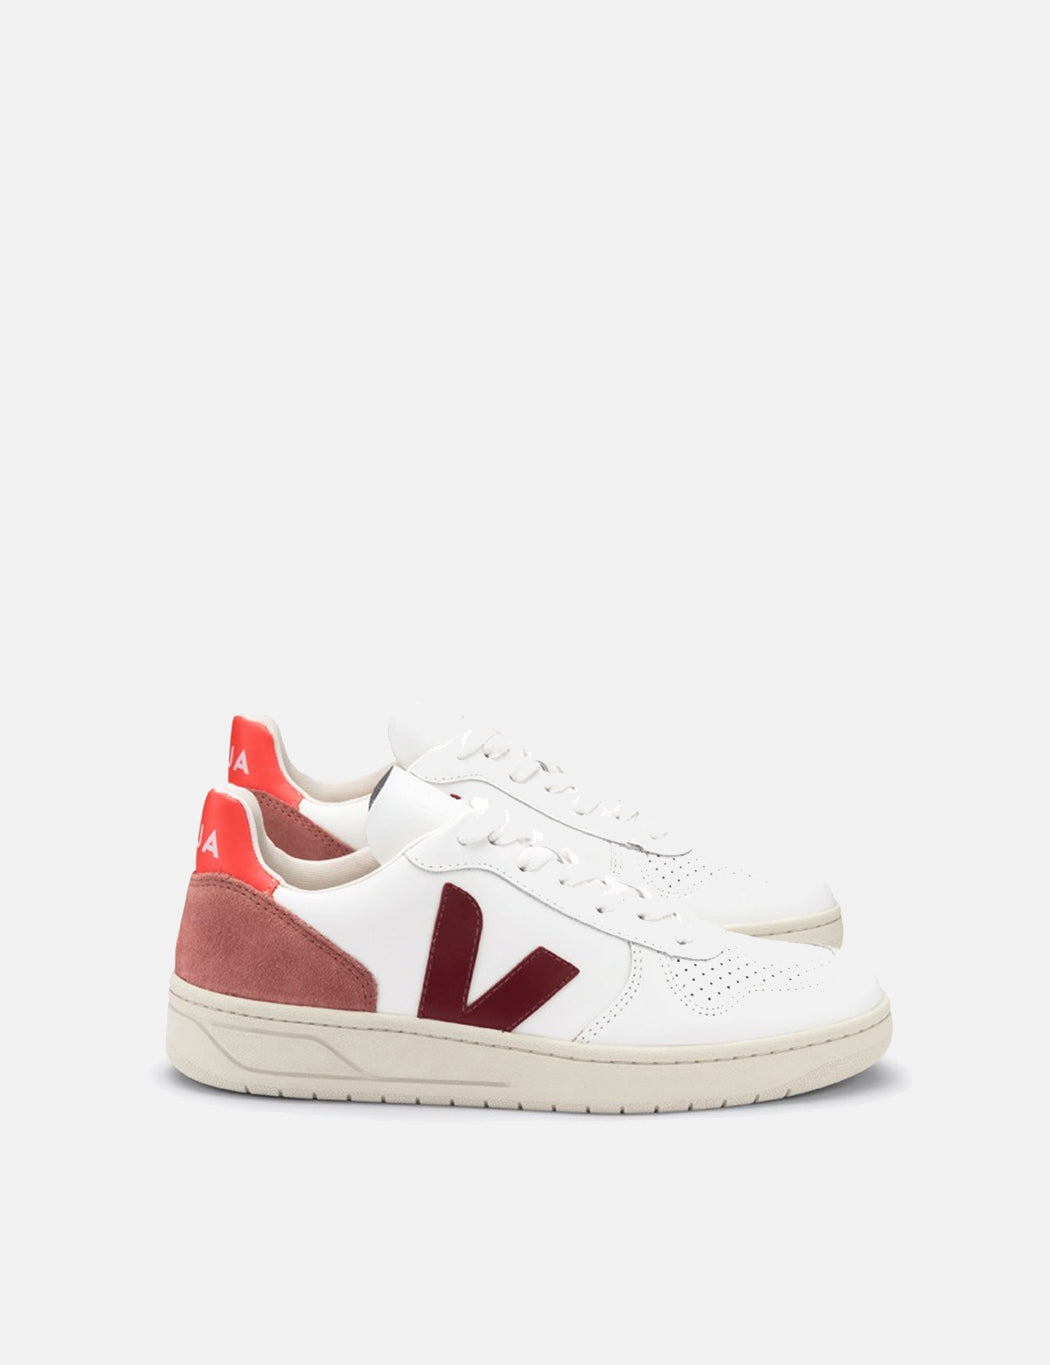 Womens Veja V-10 Leather Trainers - Extra White/Marsala Dried Petal/Orange